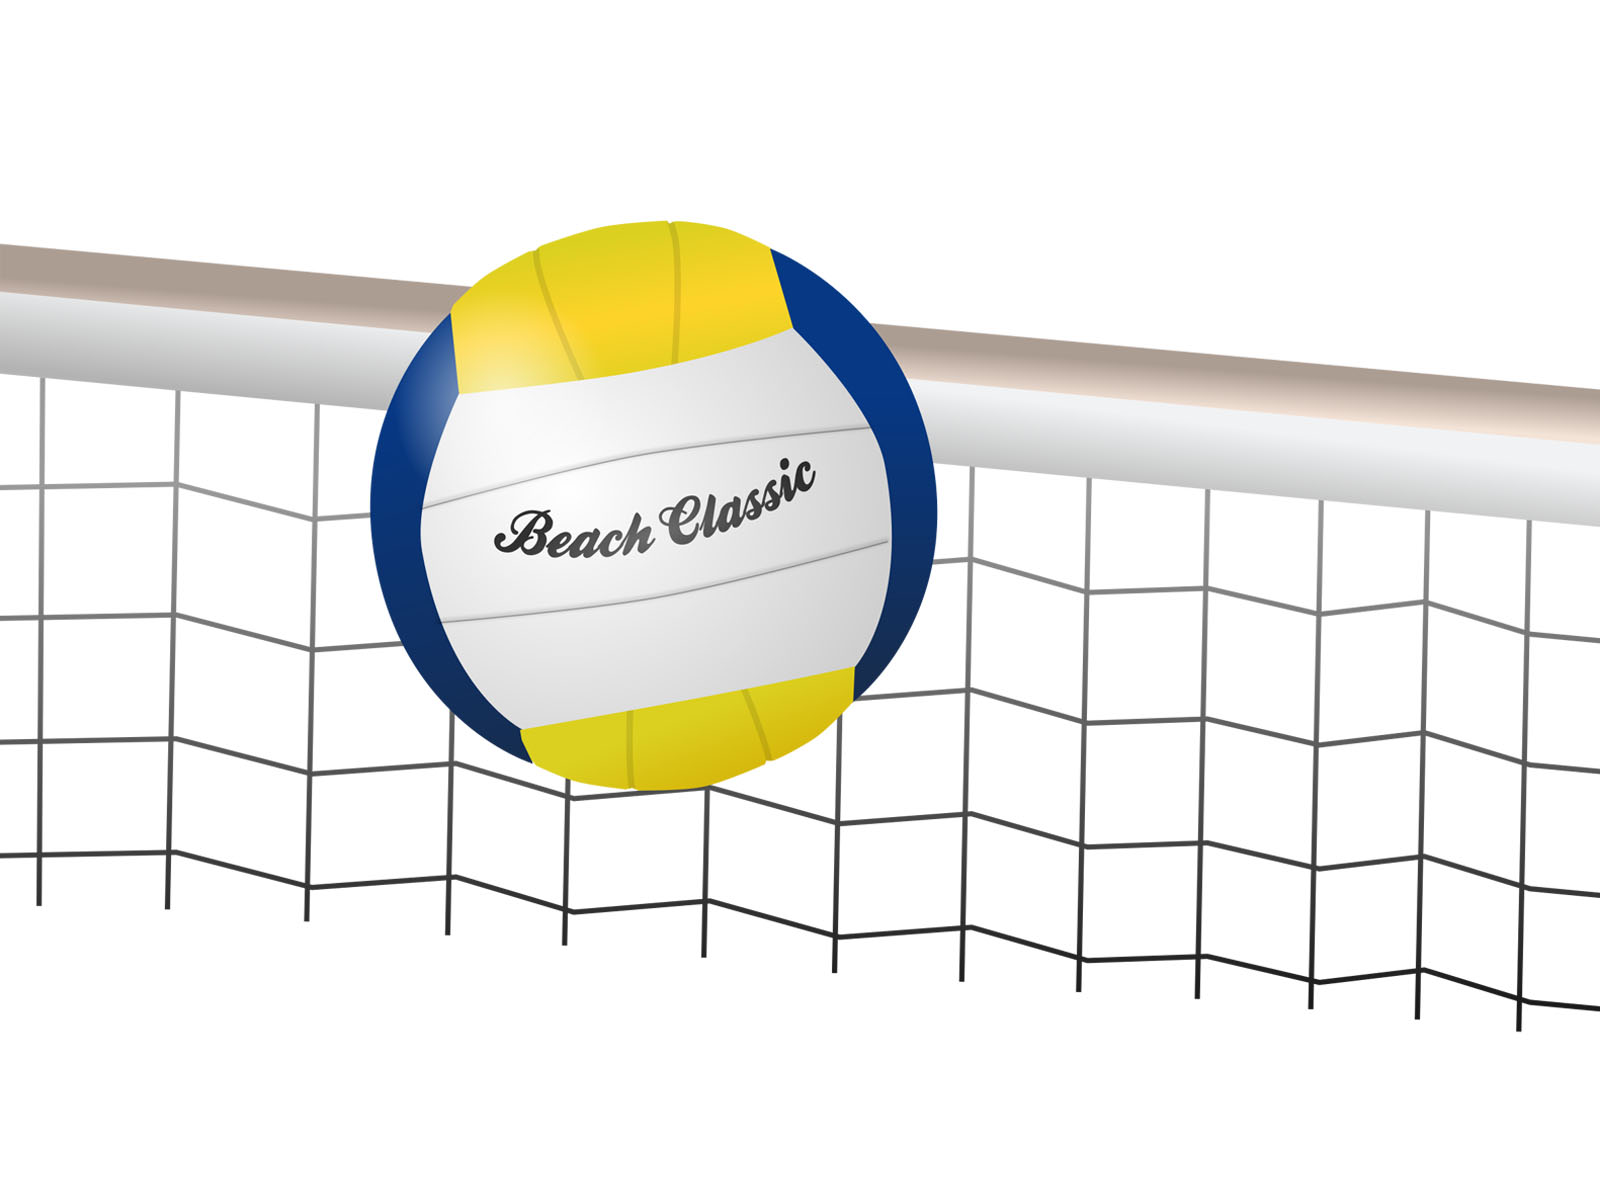 Volleyball beach classic ppt backgrounds holiday sports volleyball beach classic ppt backgrounds toneelgroepblik Choice Image